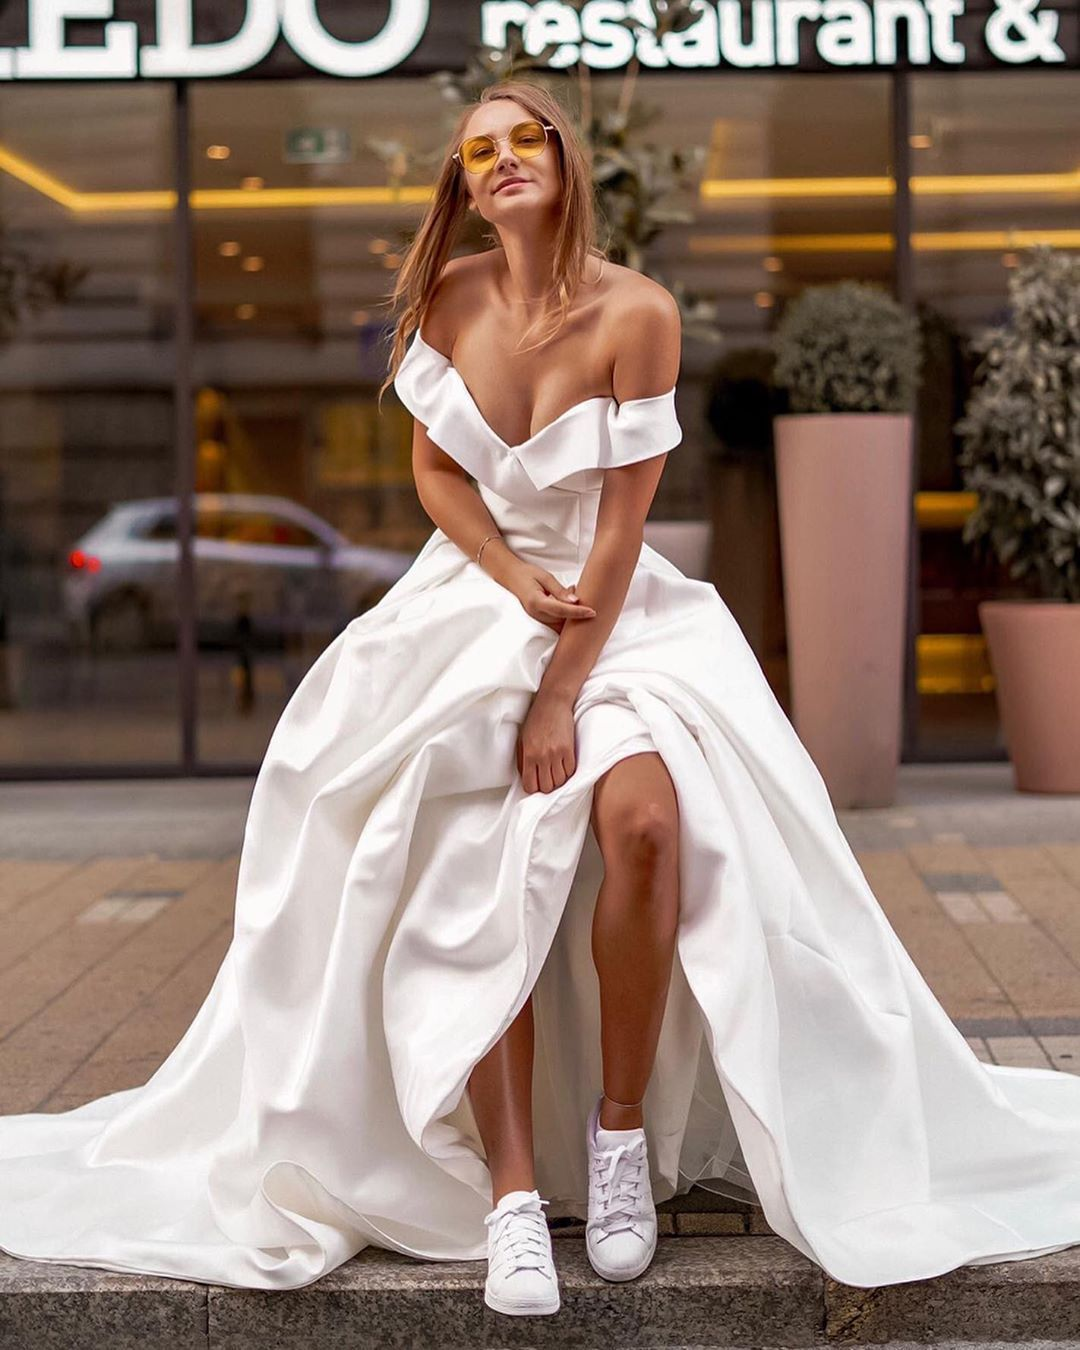 Brides In Sneakers How To Rock The Look Wedding Dress With Sneakers Fancy Wedding Dresses Dress With Sneakers [ 1350 x 1080 Pixel ]